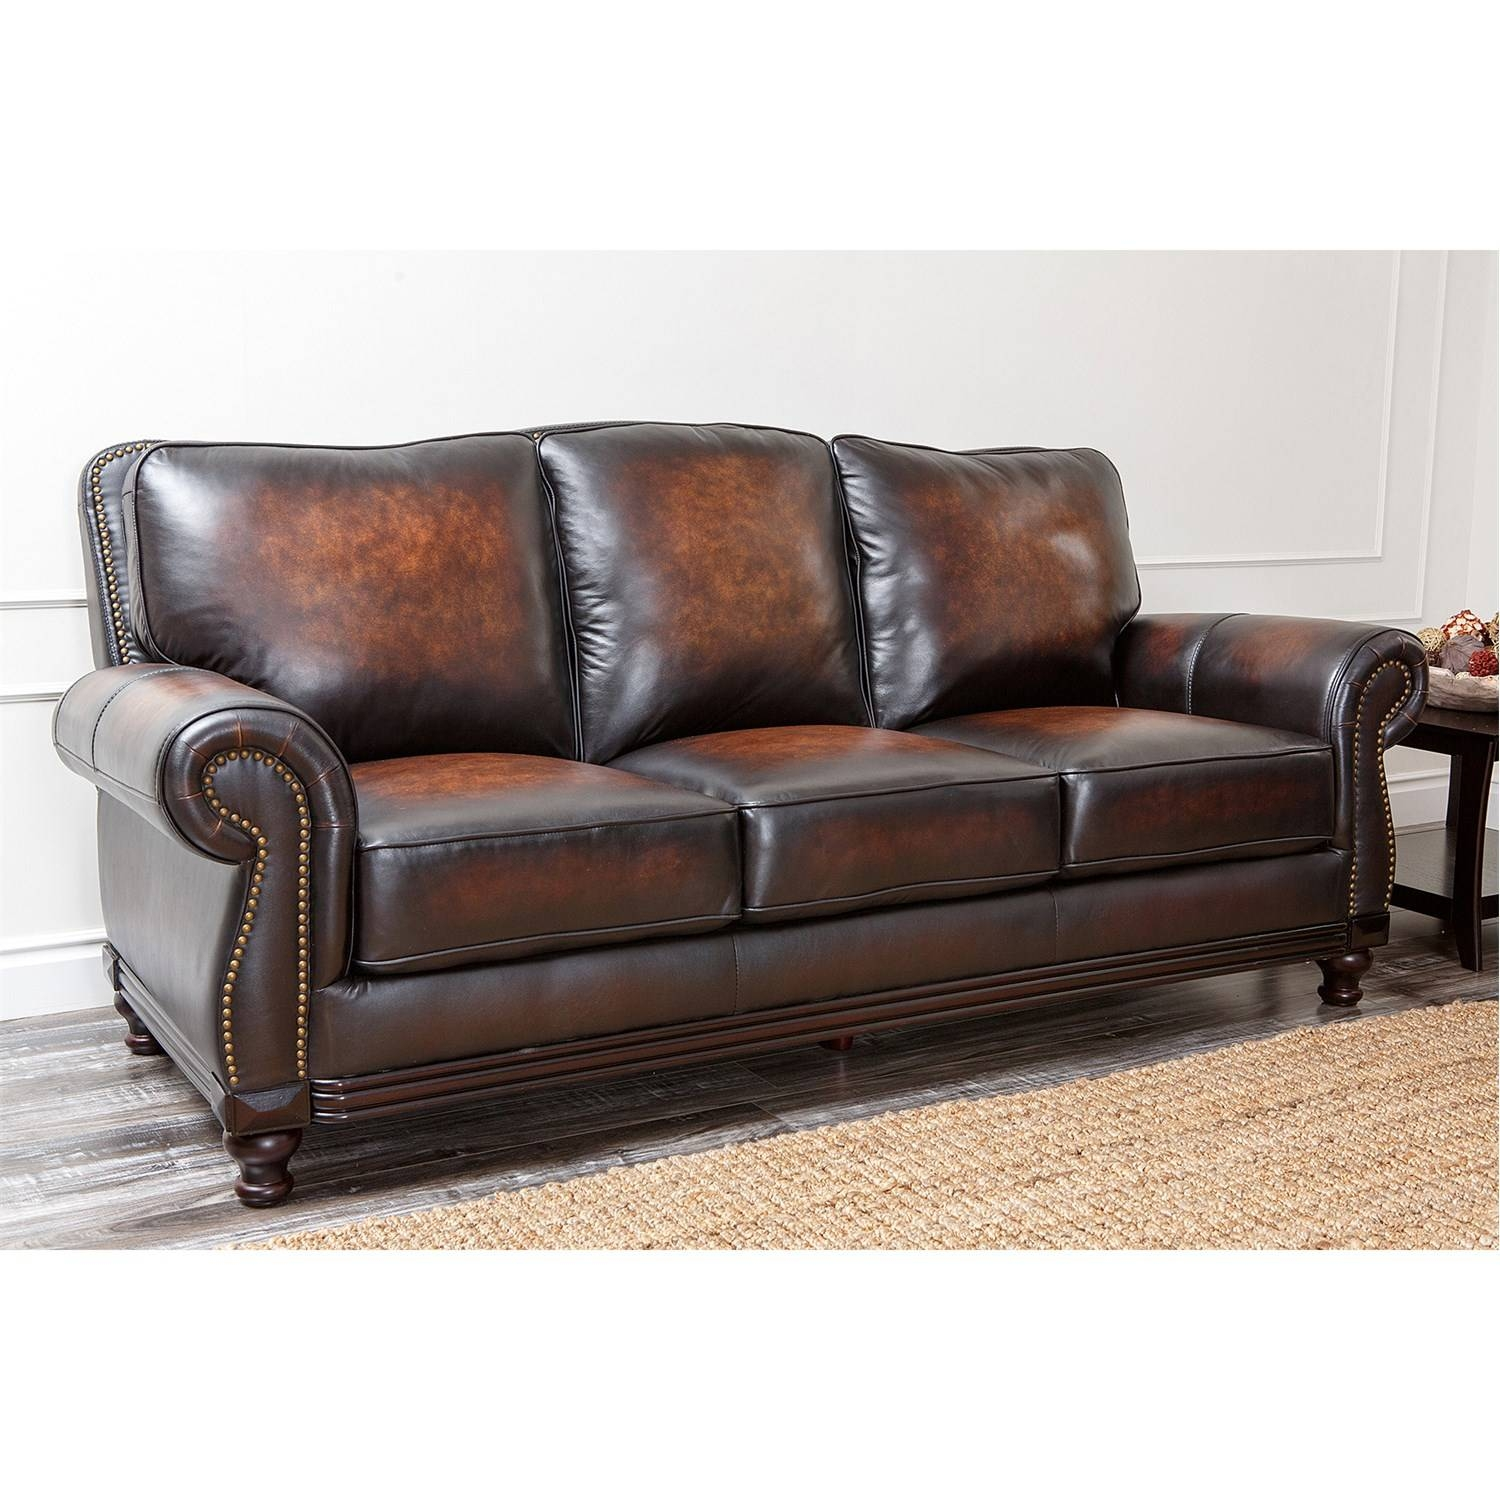 Abbyson Living Ci-N180-Brn-3 Barclay Hand-Rubbed Leather Sofa throughout Abbyson Living Sofas (Image 2 of 15)